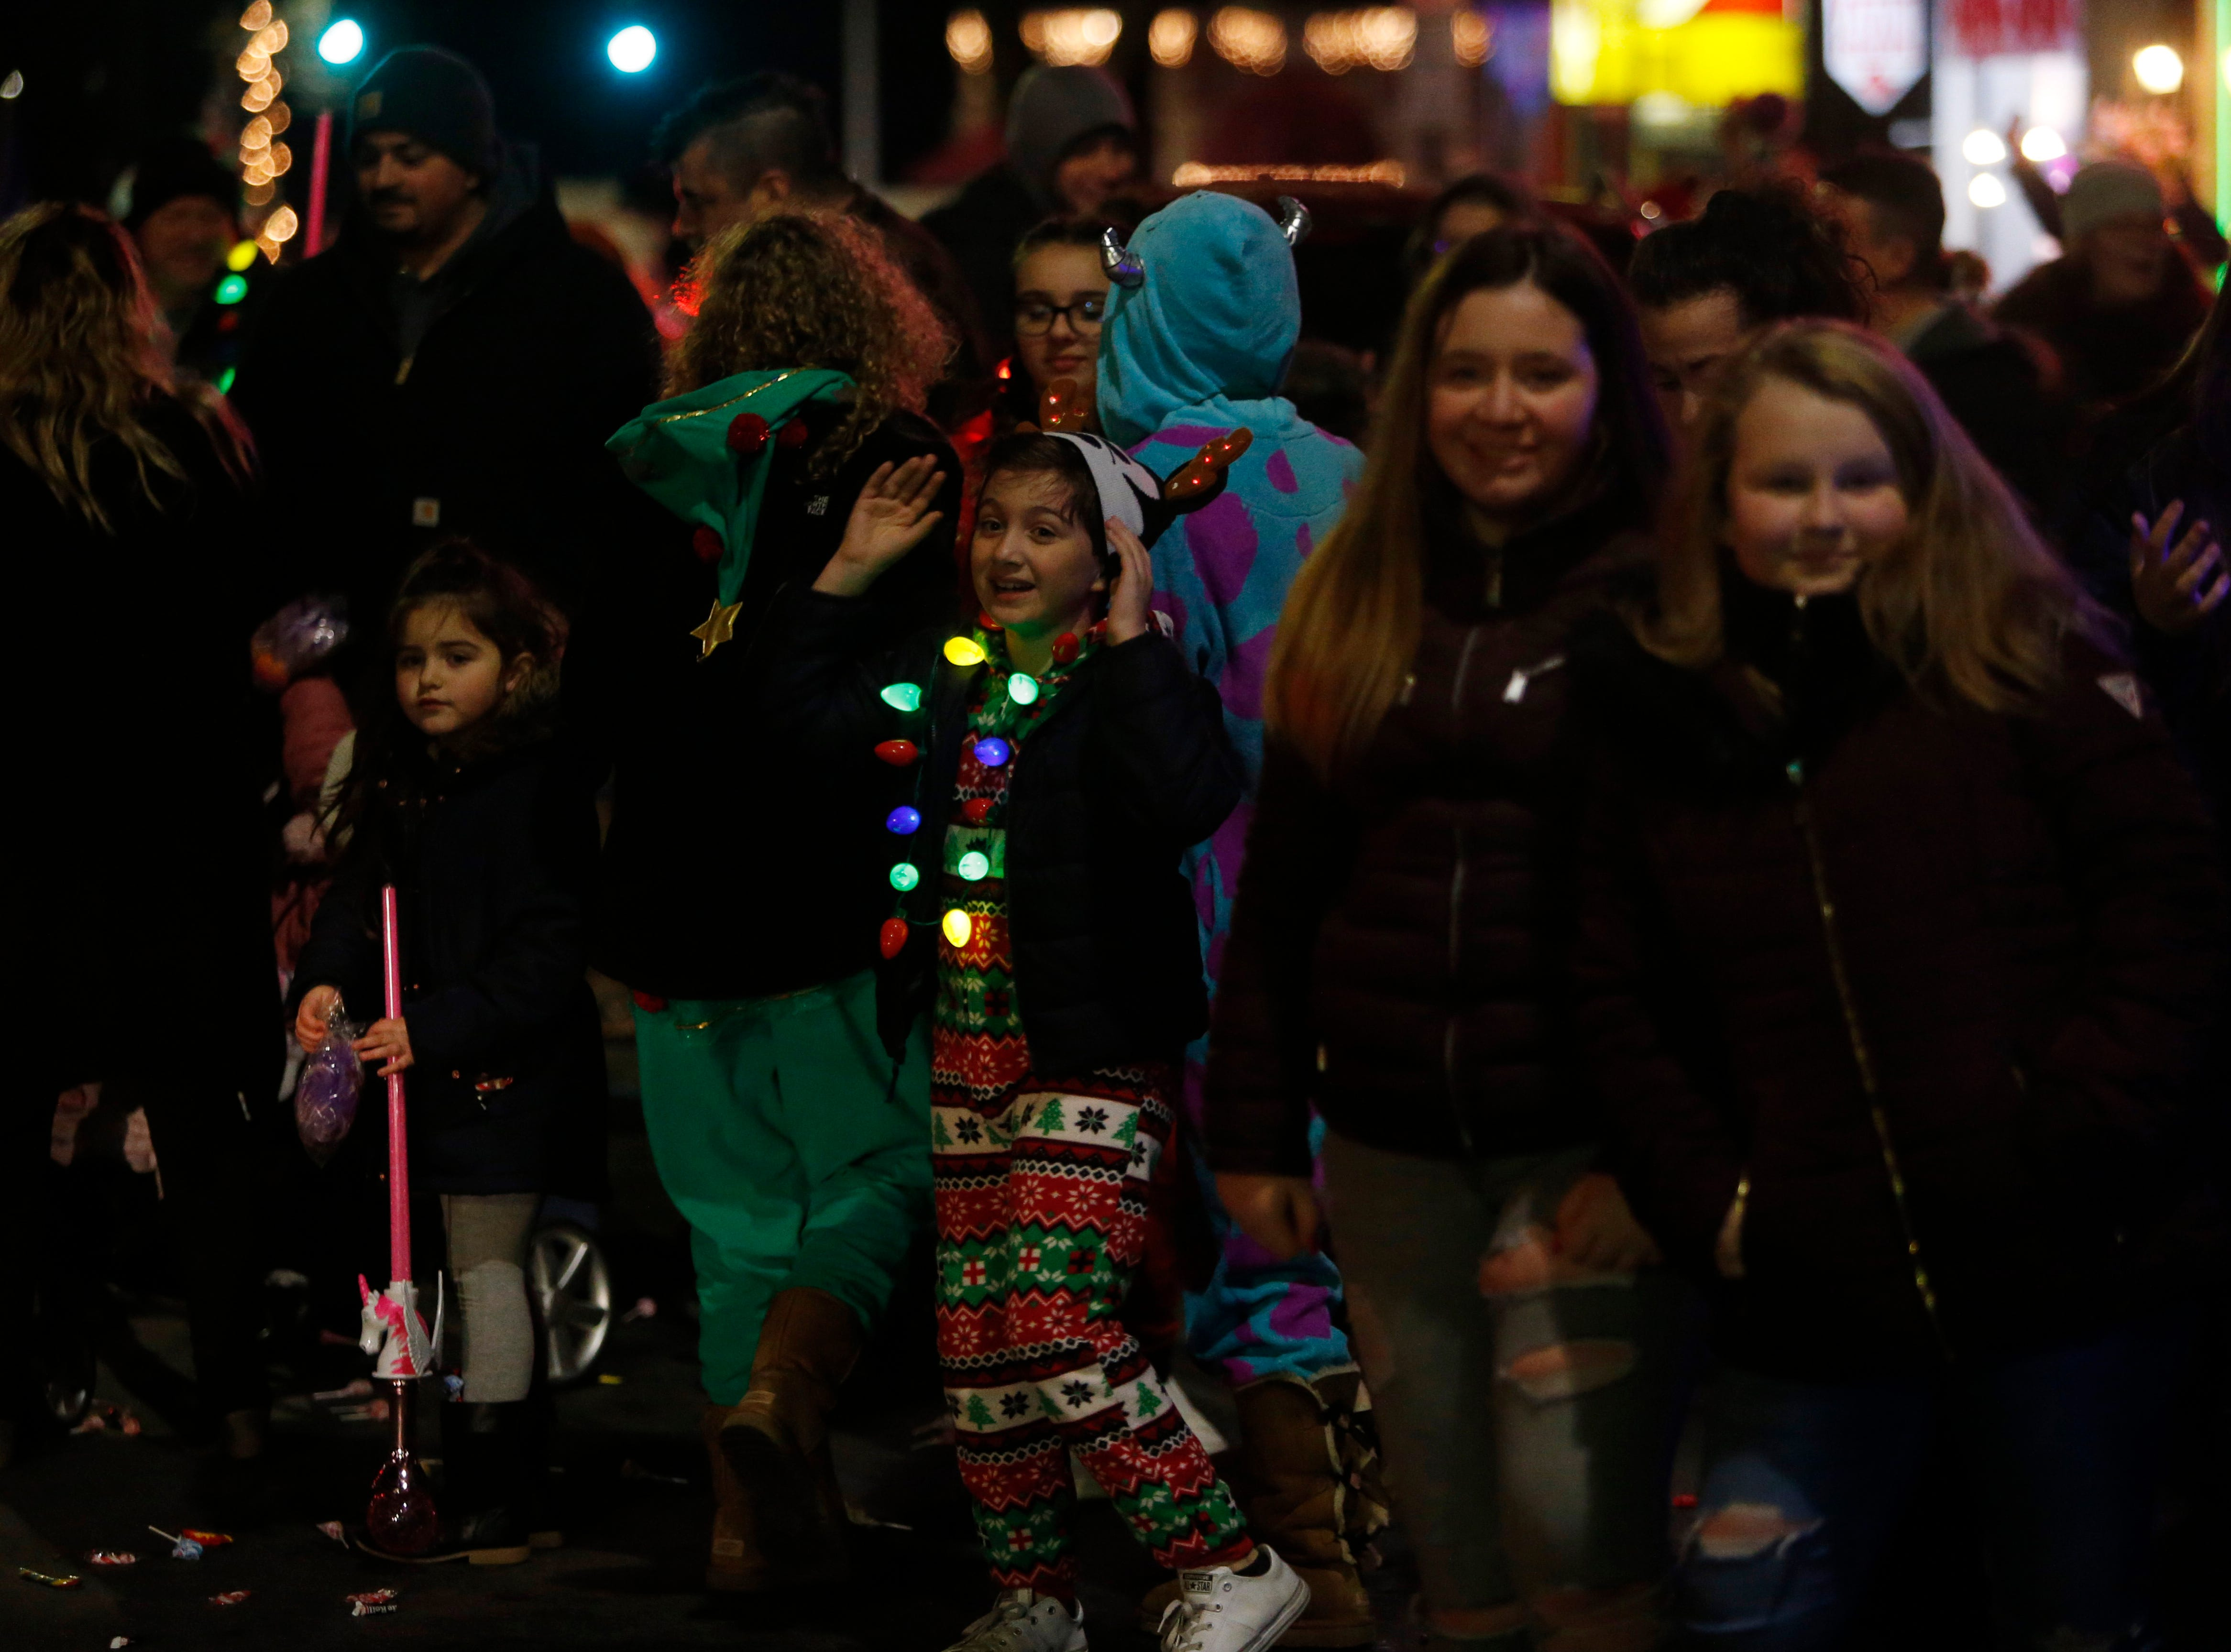 Scenes from the Celebration of Lights Parade in the City of Poughkeepsie on November 30, 2018.